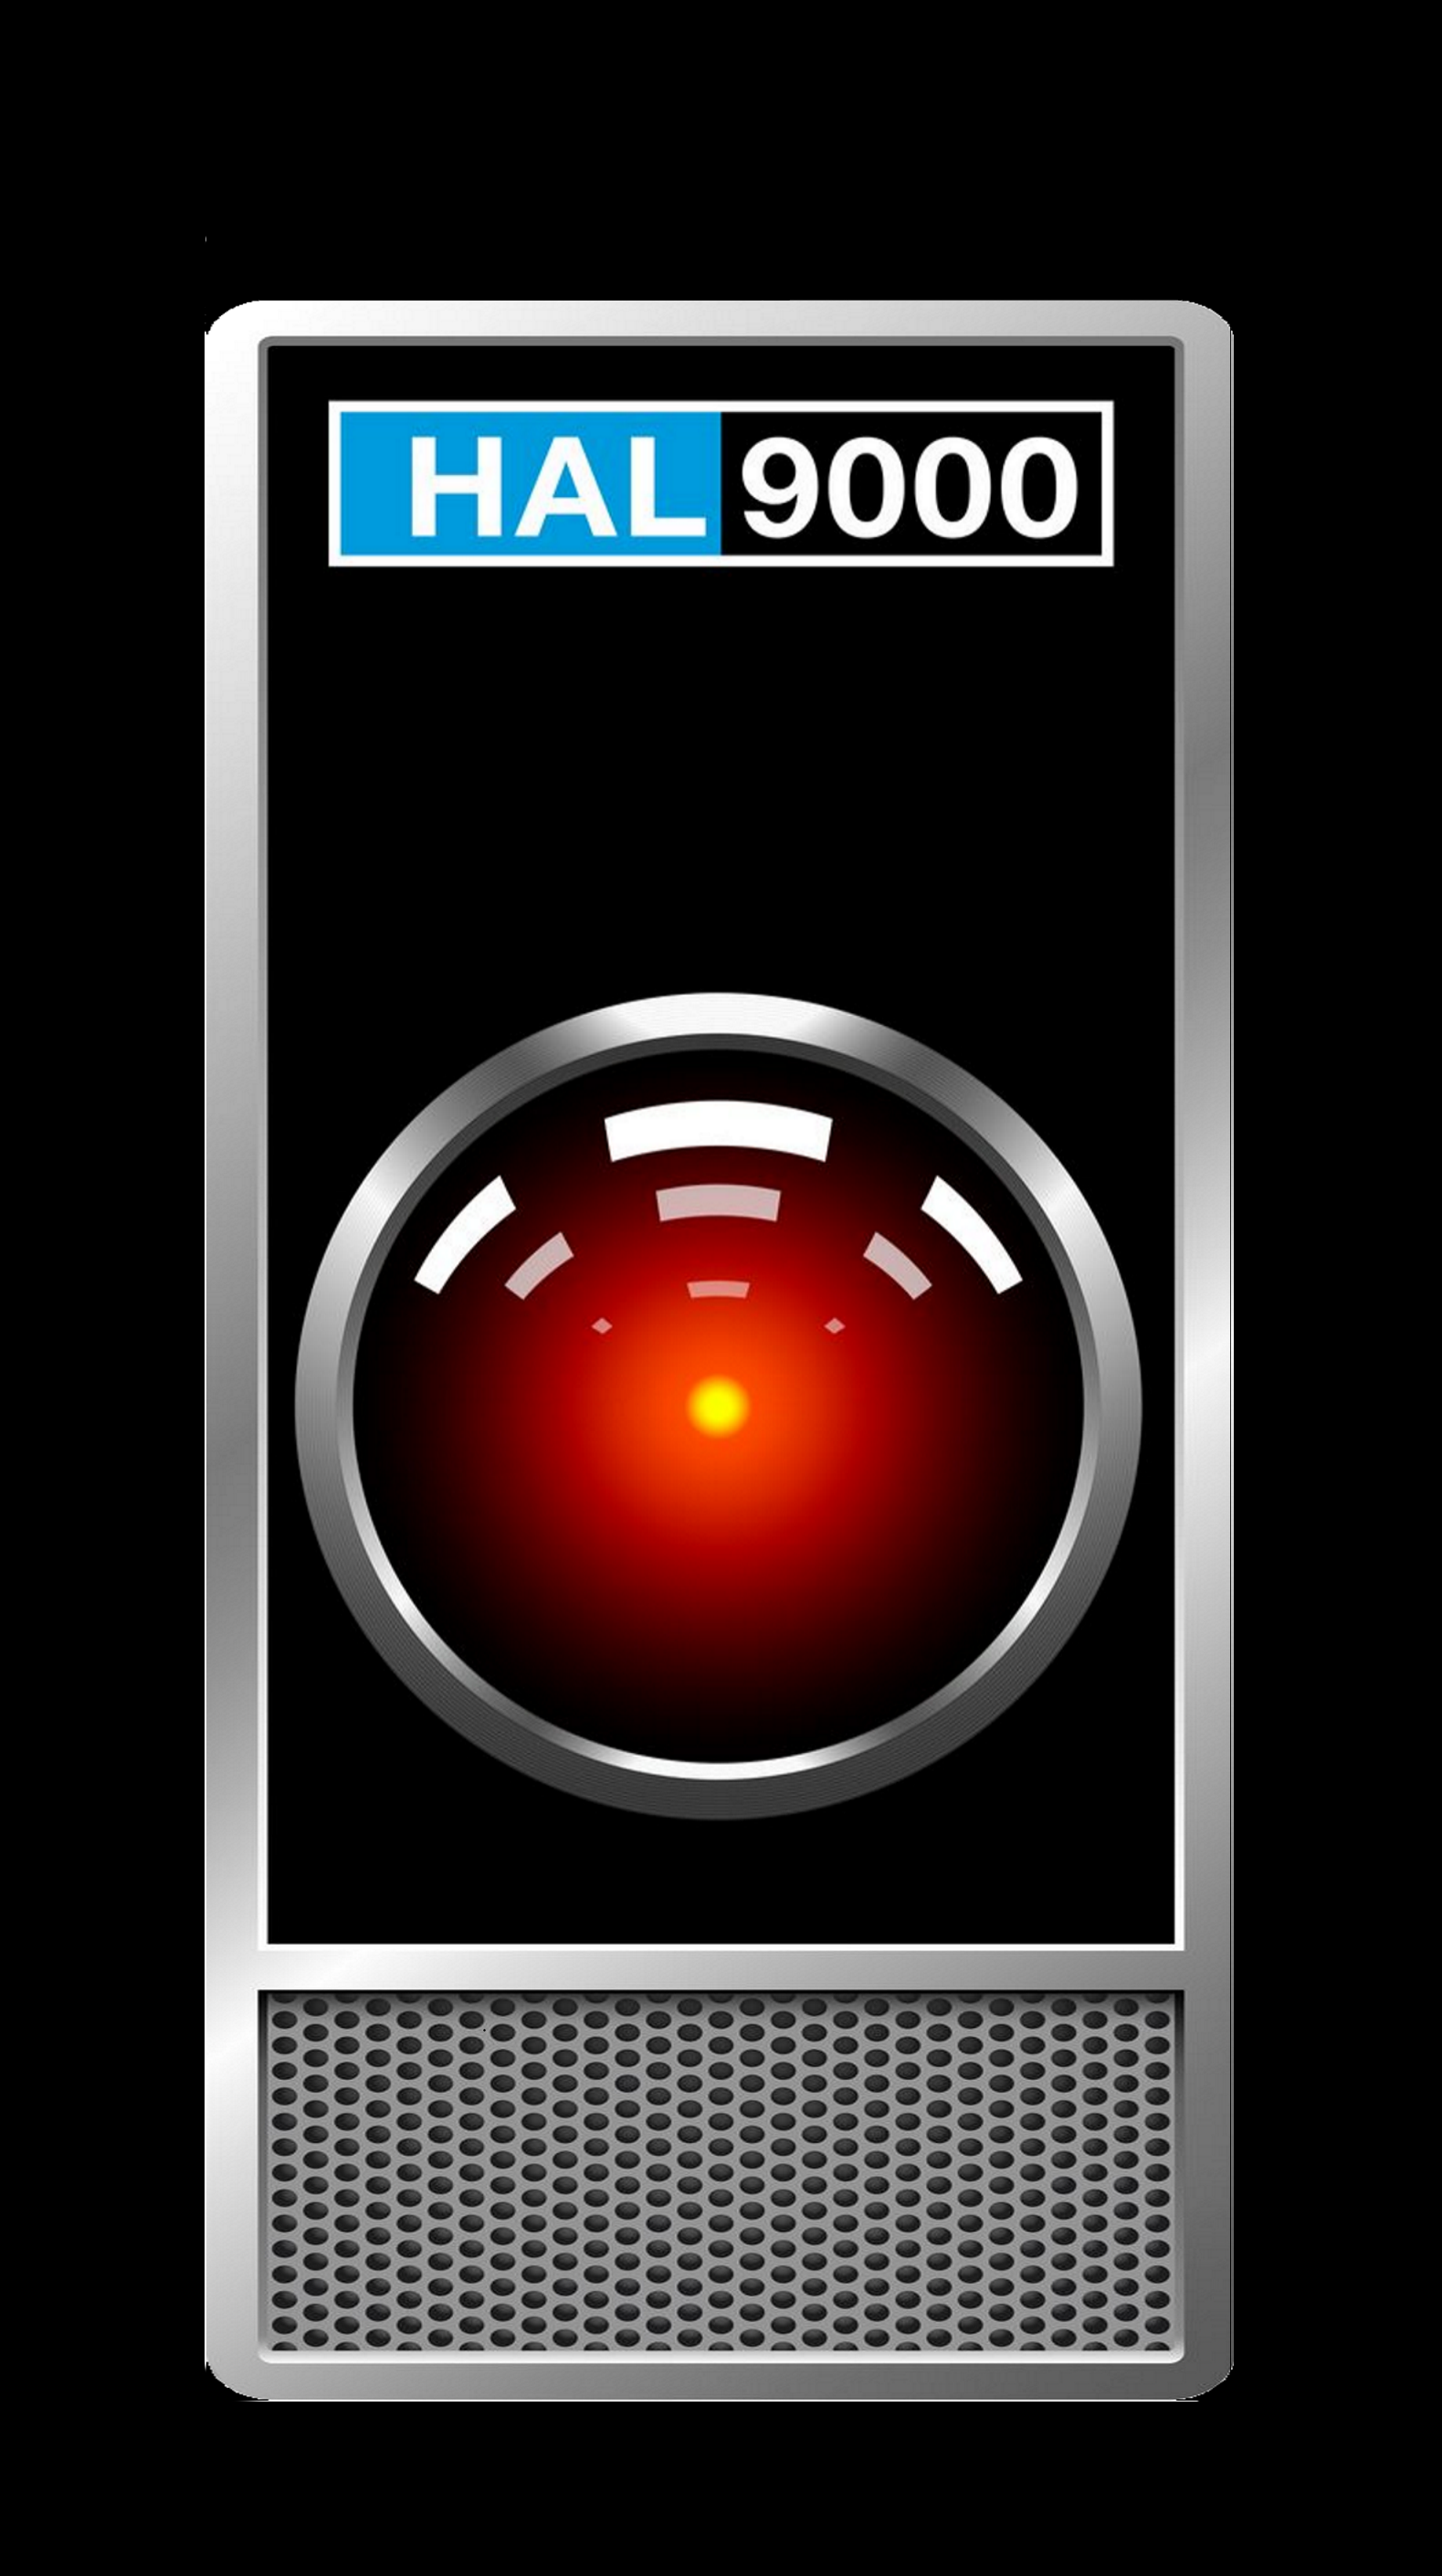 2001 Hal9000 Wp For Iphone X Parallax Ver2 ロゴデザイン デザイン